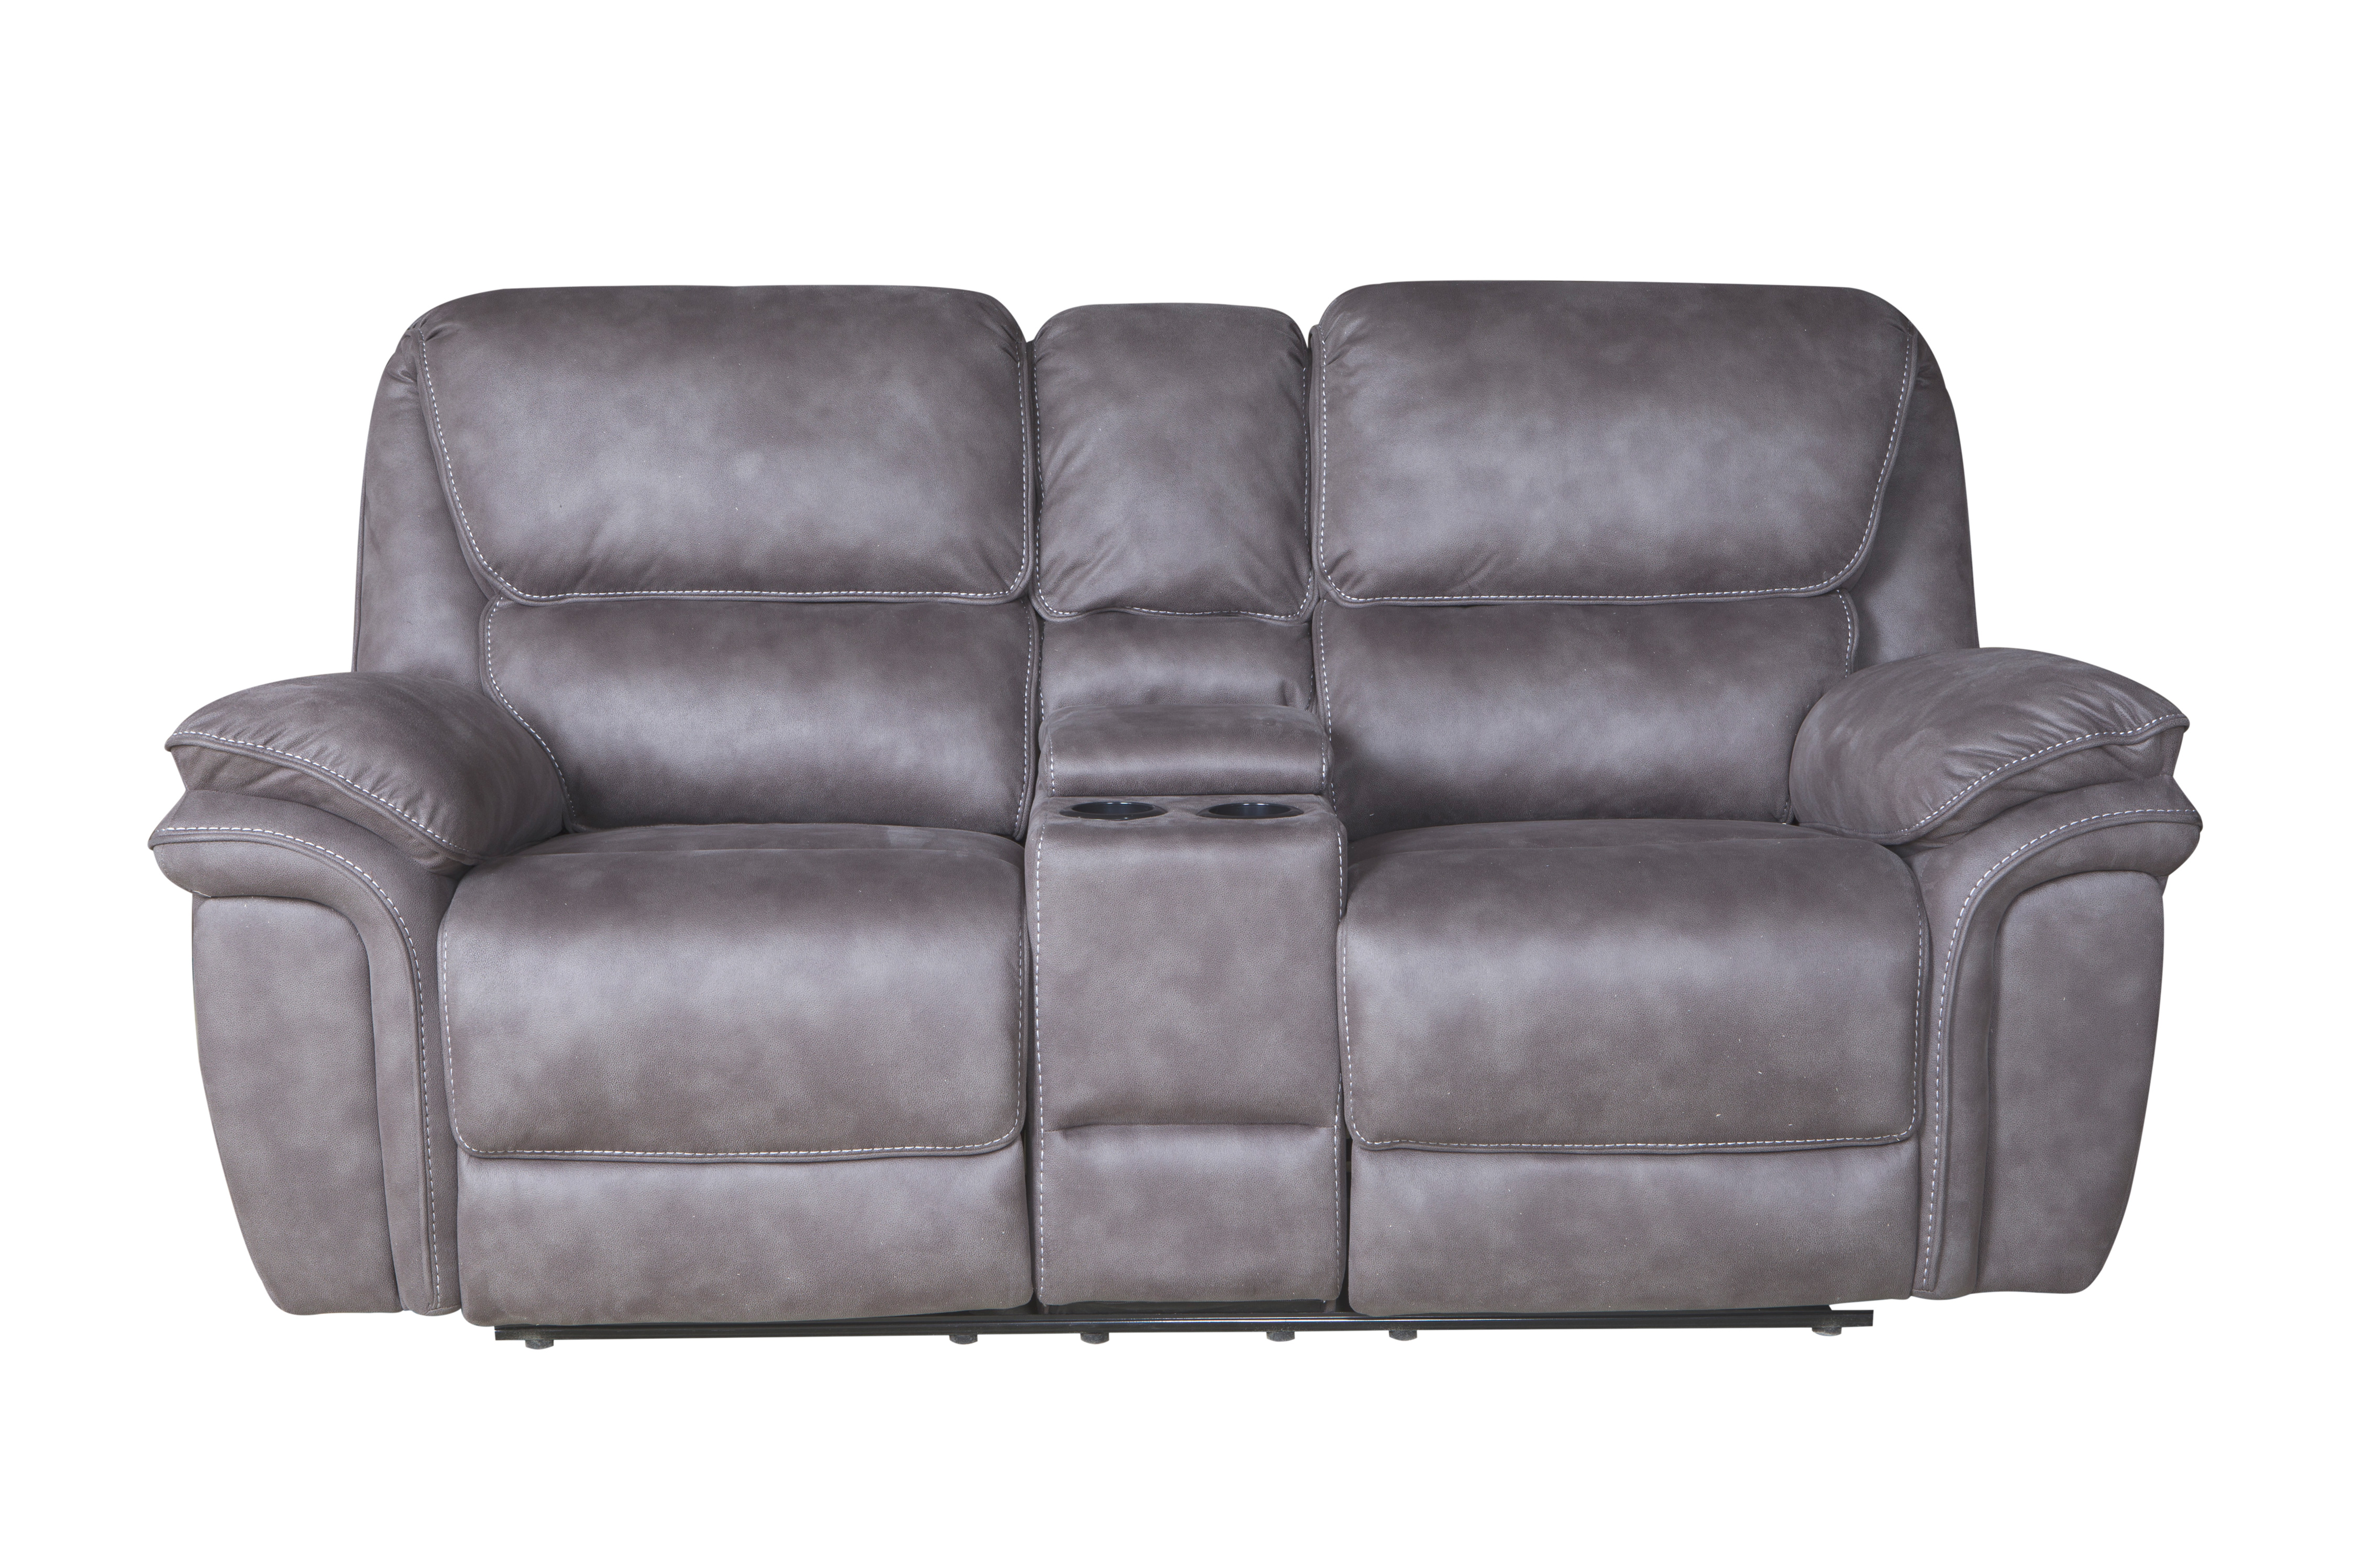 American style modern fabric cheap price cozy home funiture sofa